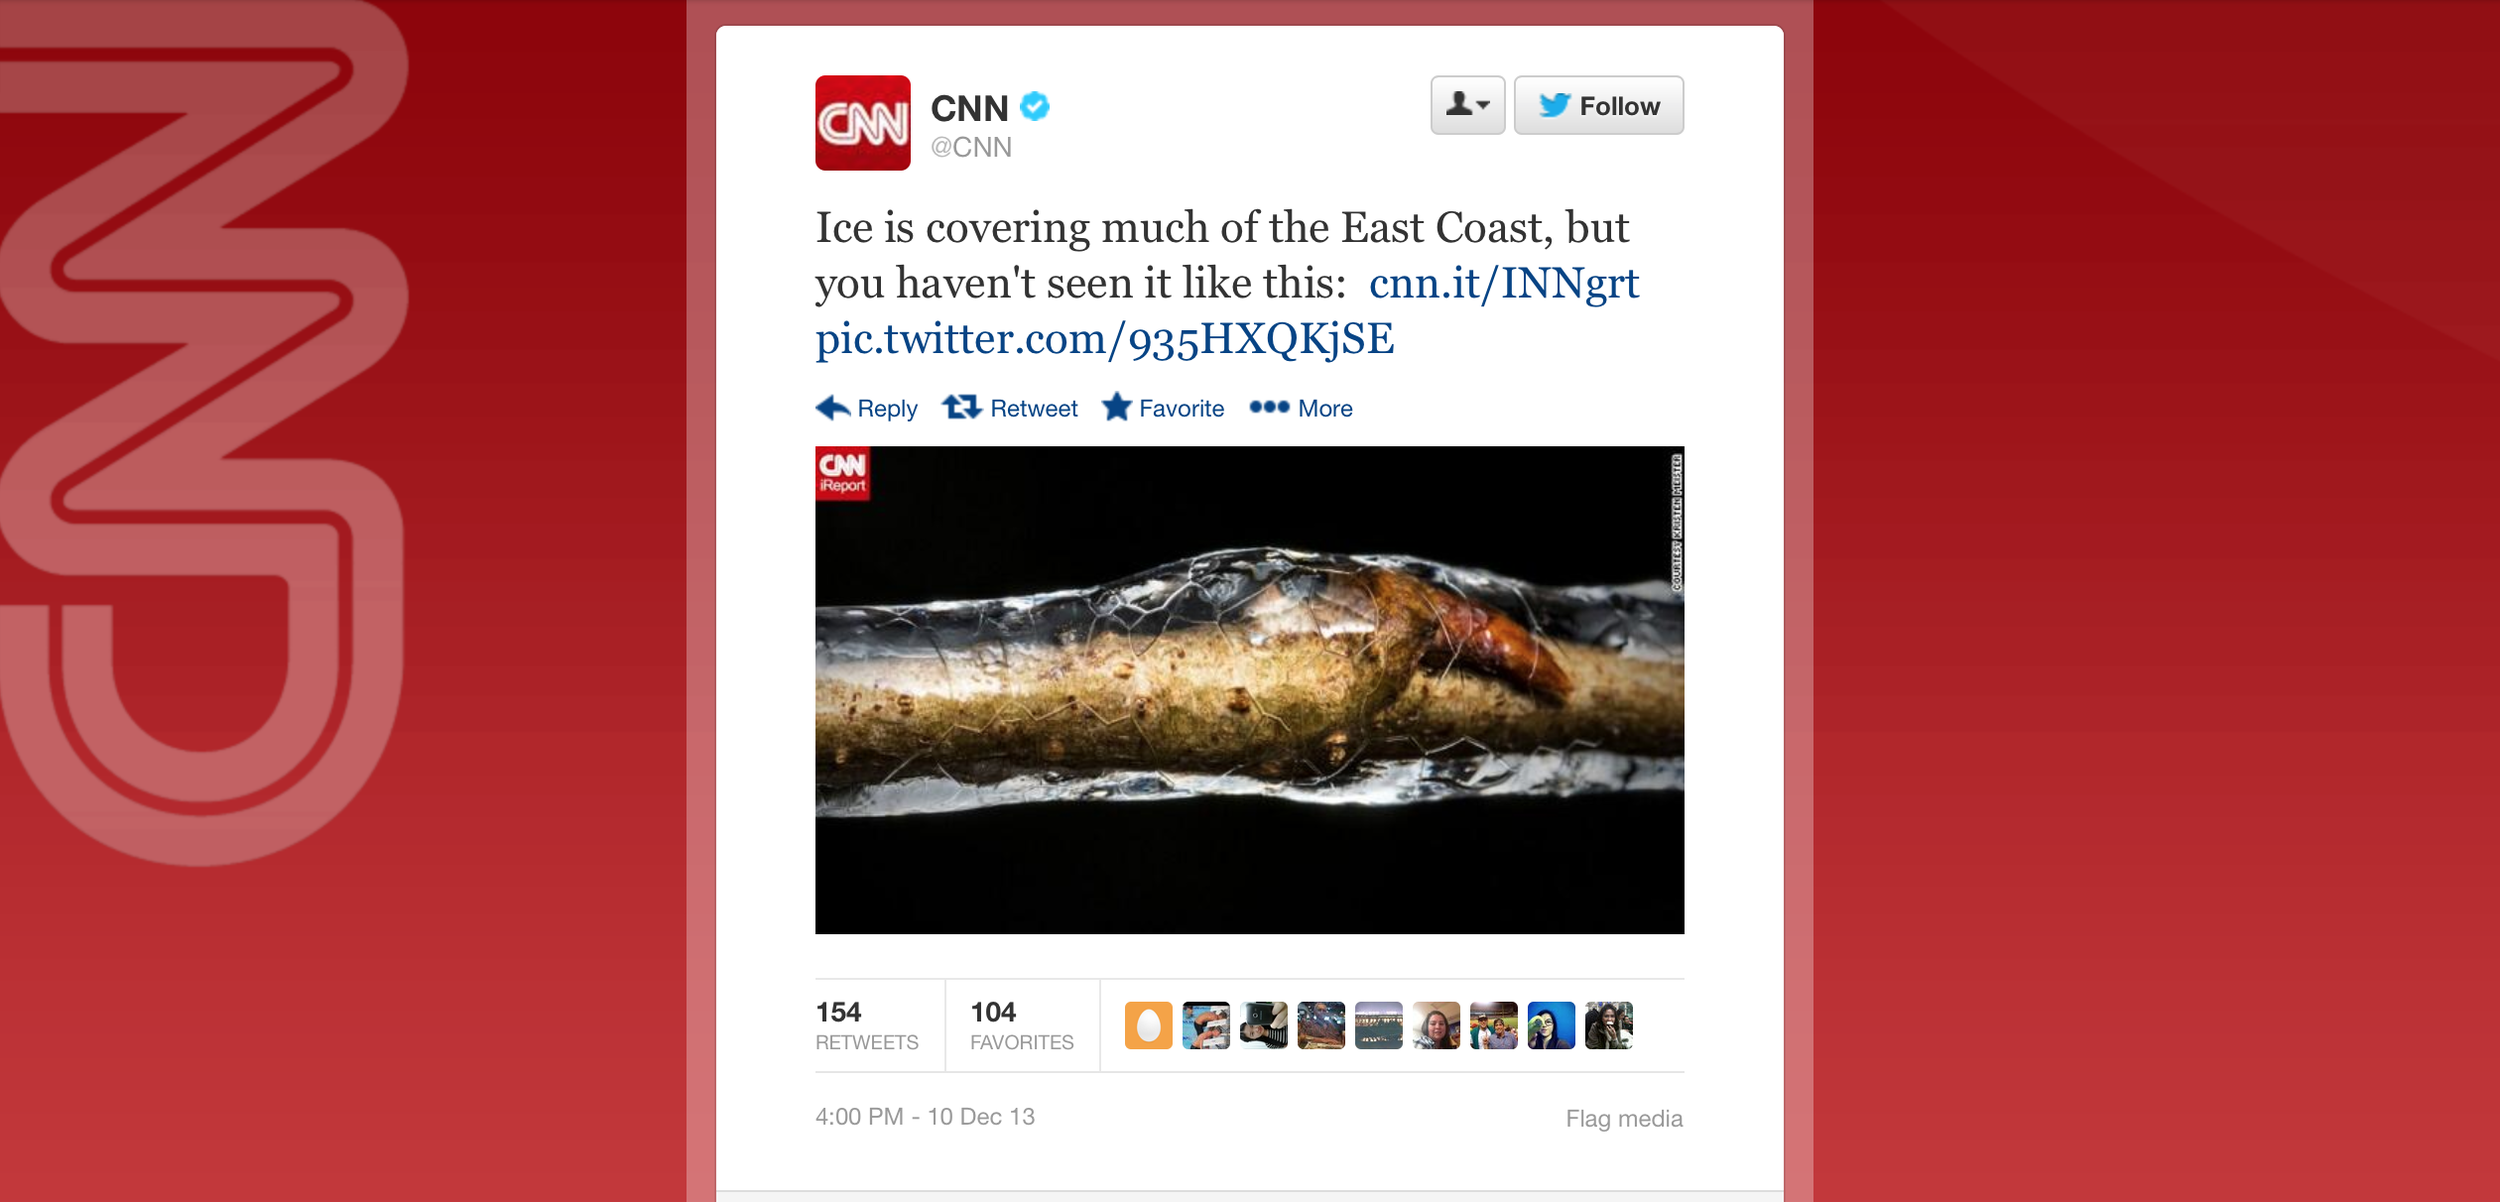 CNN's official Twitter feed posted a photo and the article!